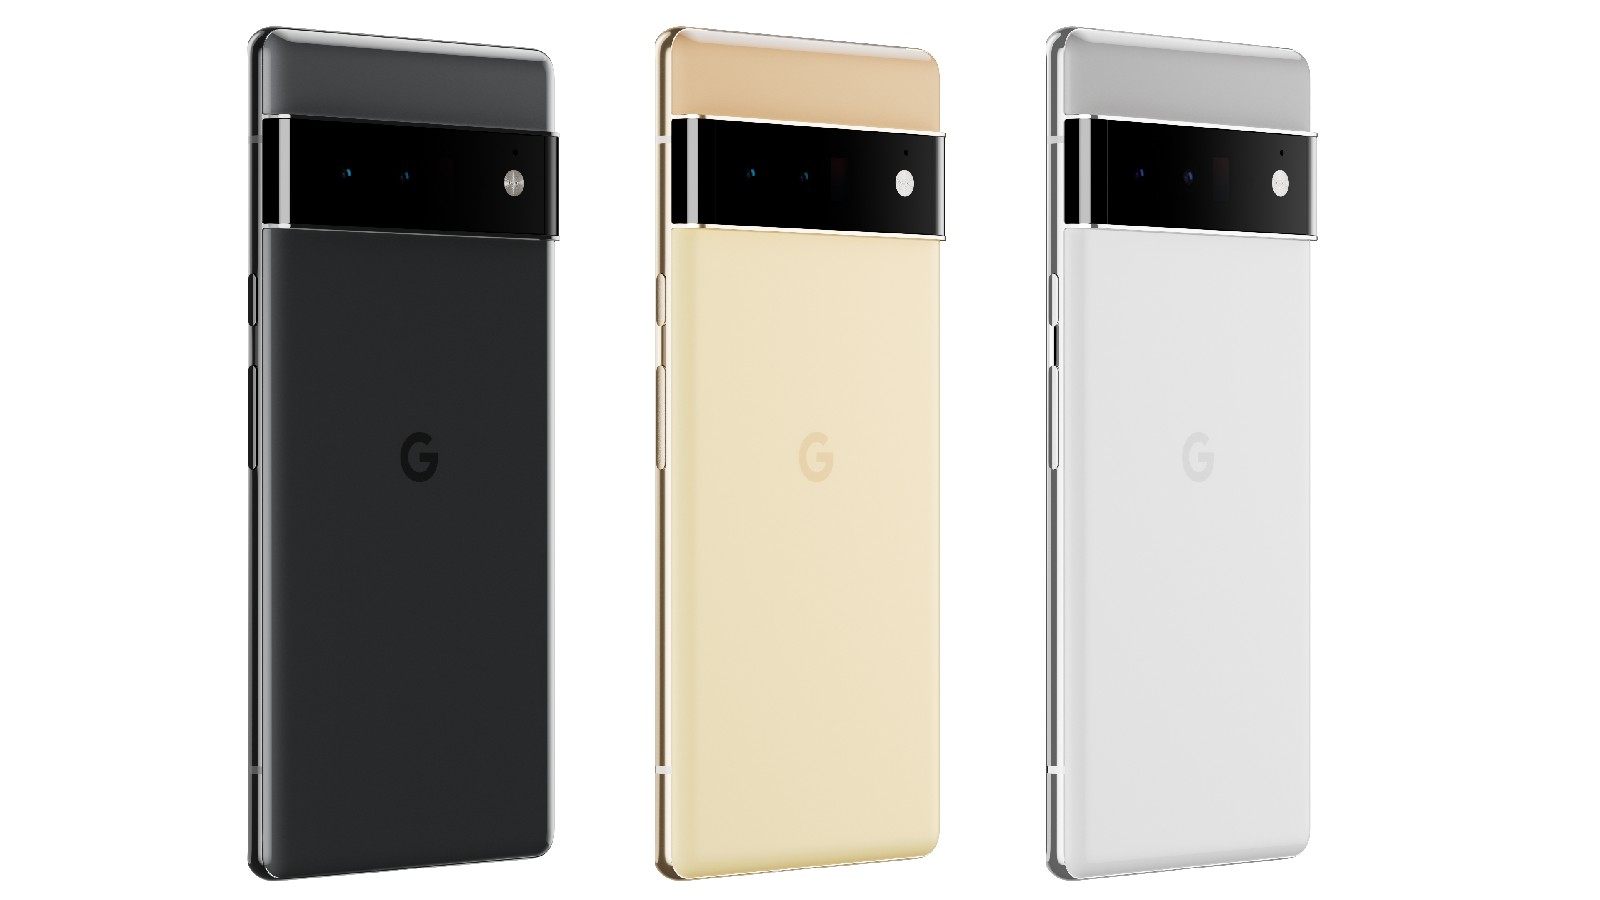 A trio of Pixel 6 Pros. From left to right, their color schemes are: Black/black, Gold/yellow and Grey/silver.